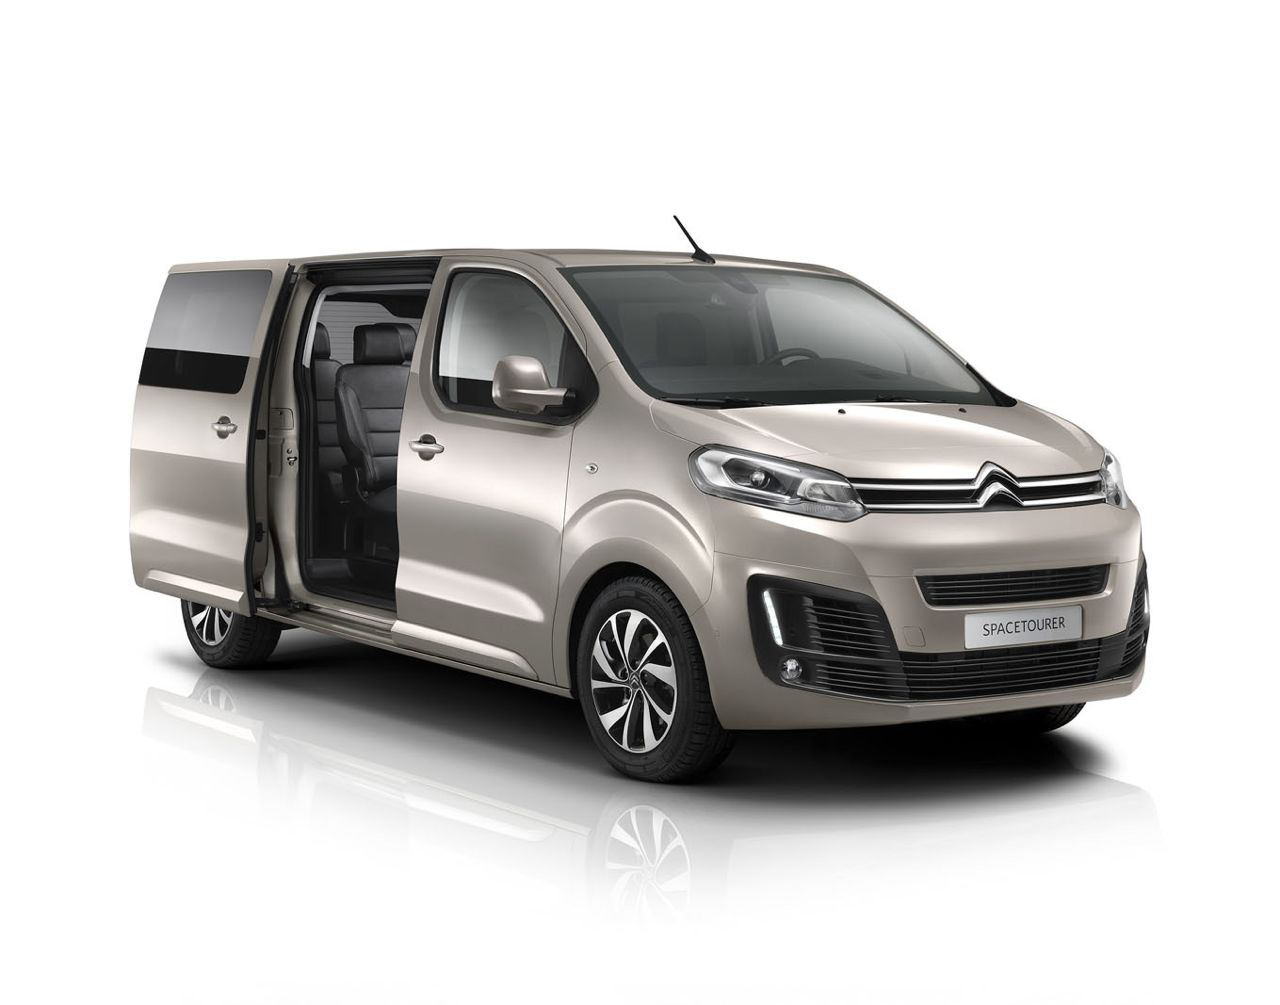 Citroen SpaceTourer 2016 03